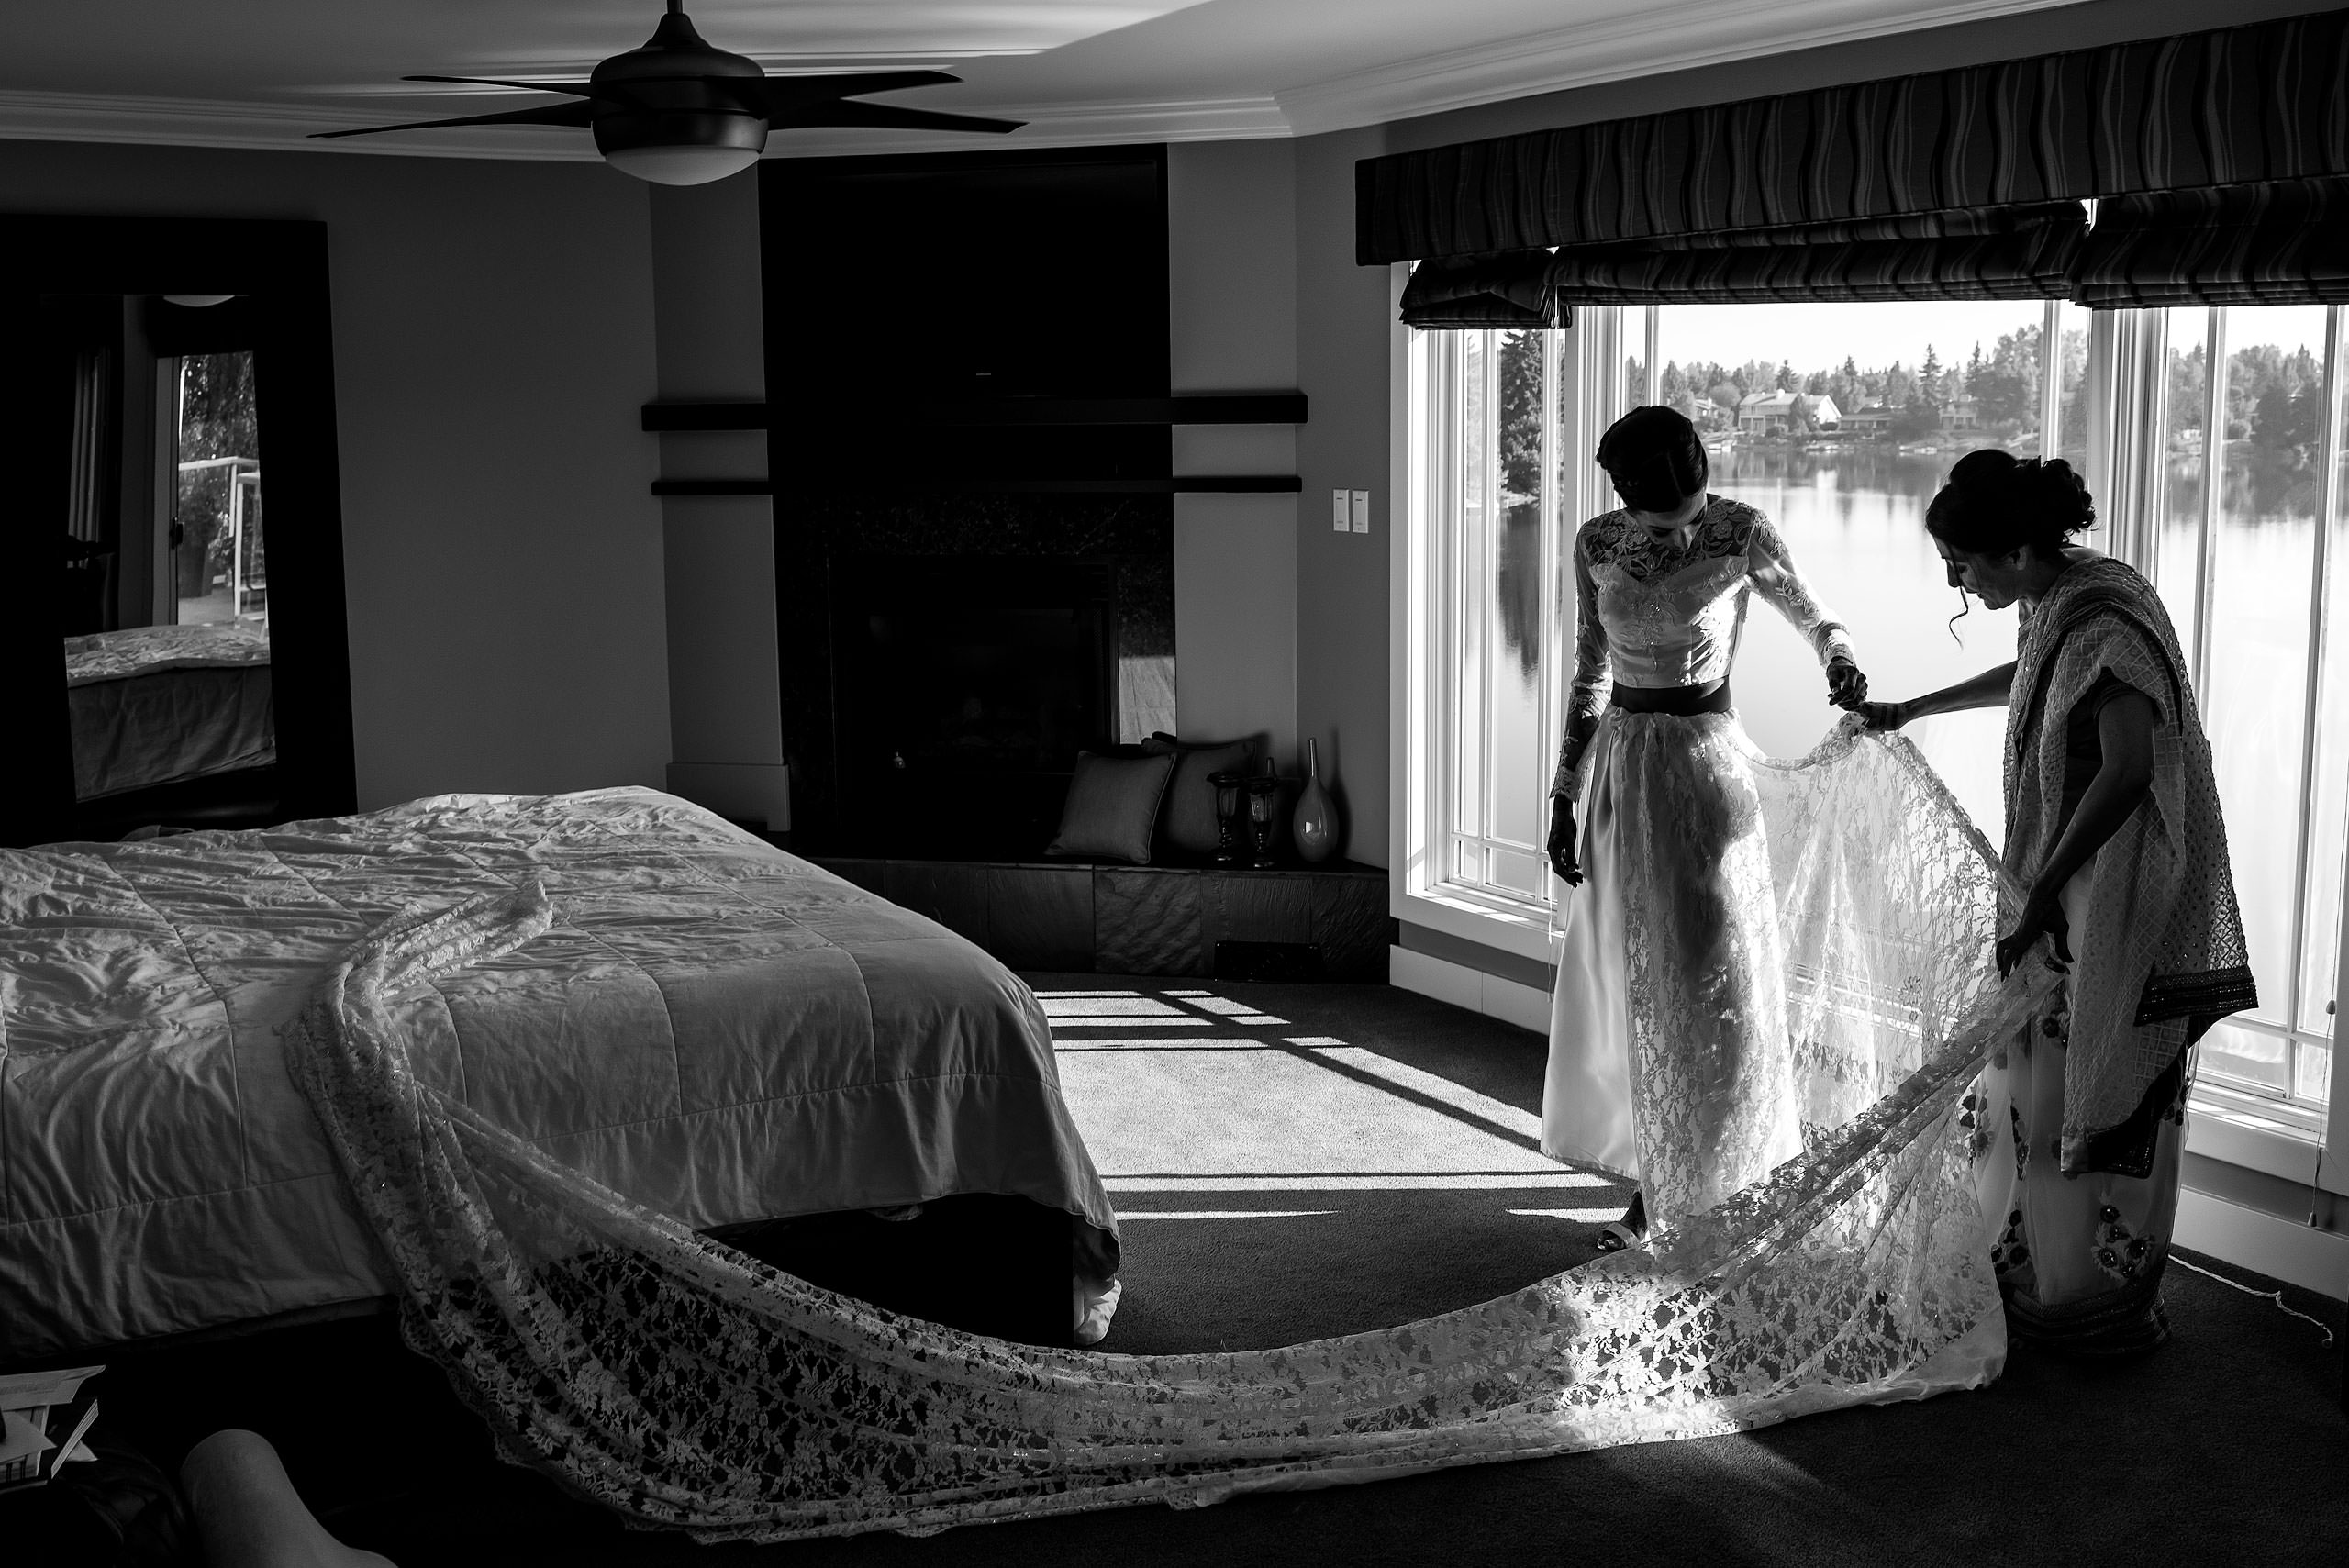 an Indian bride getting ready for her wedding day by Calgary Banff Wedding Photographer Sean LeBlanc